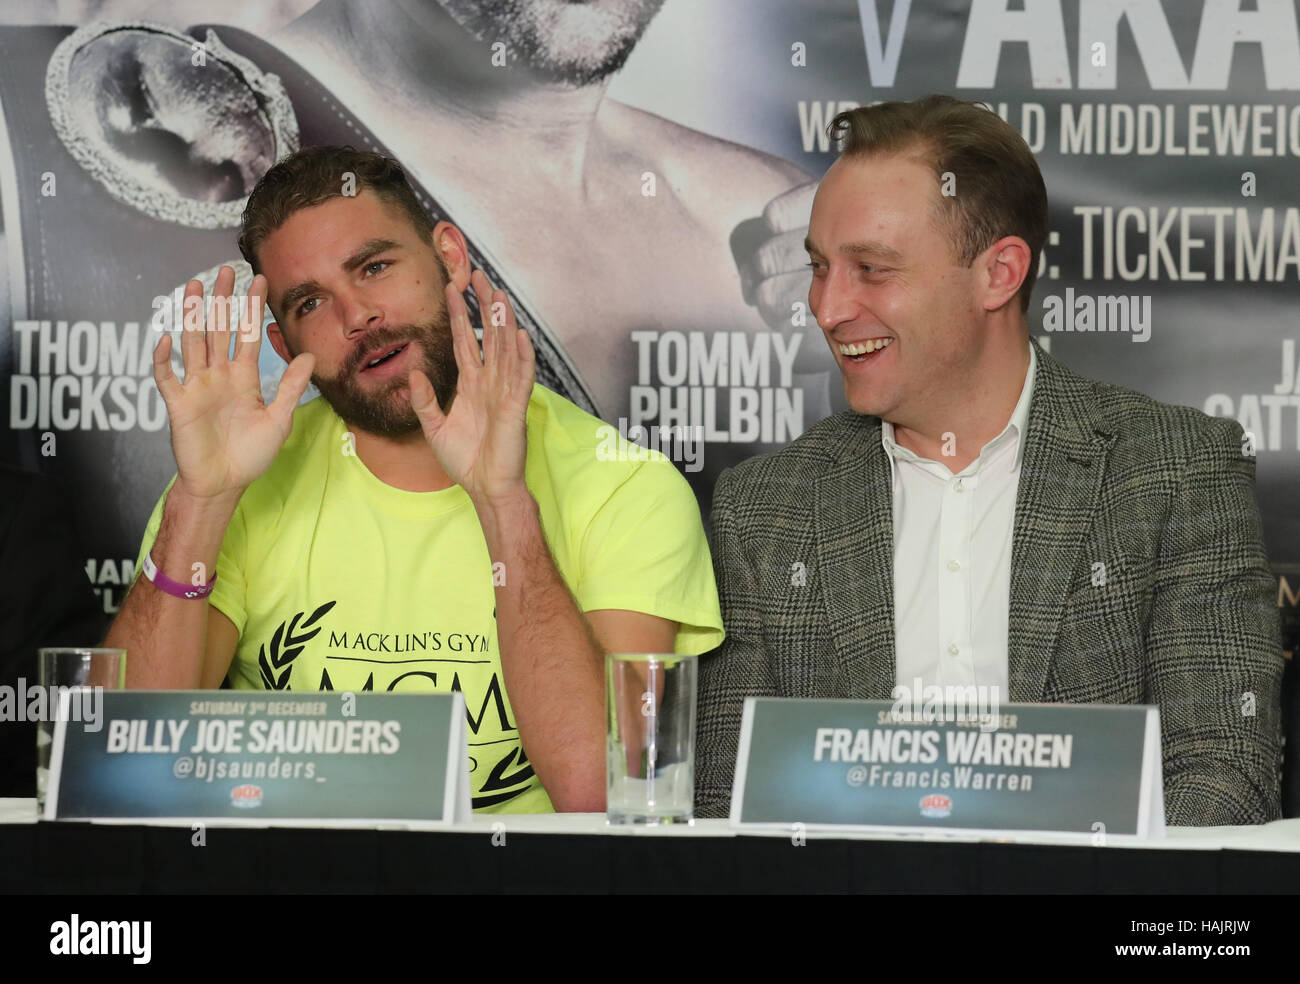 Boxer Billy Joe Saunders (left) with promoters Francis Warren during a press conference at Crown Plaza Hotel, Glasgow. - Stock Image